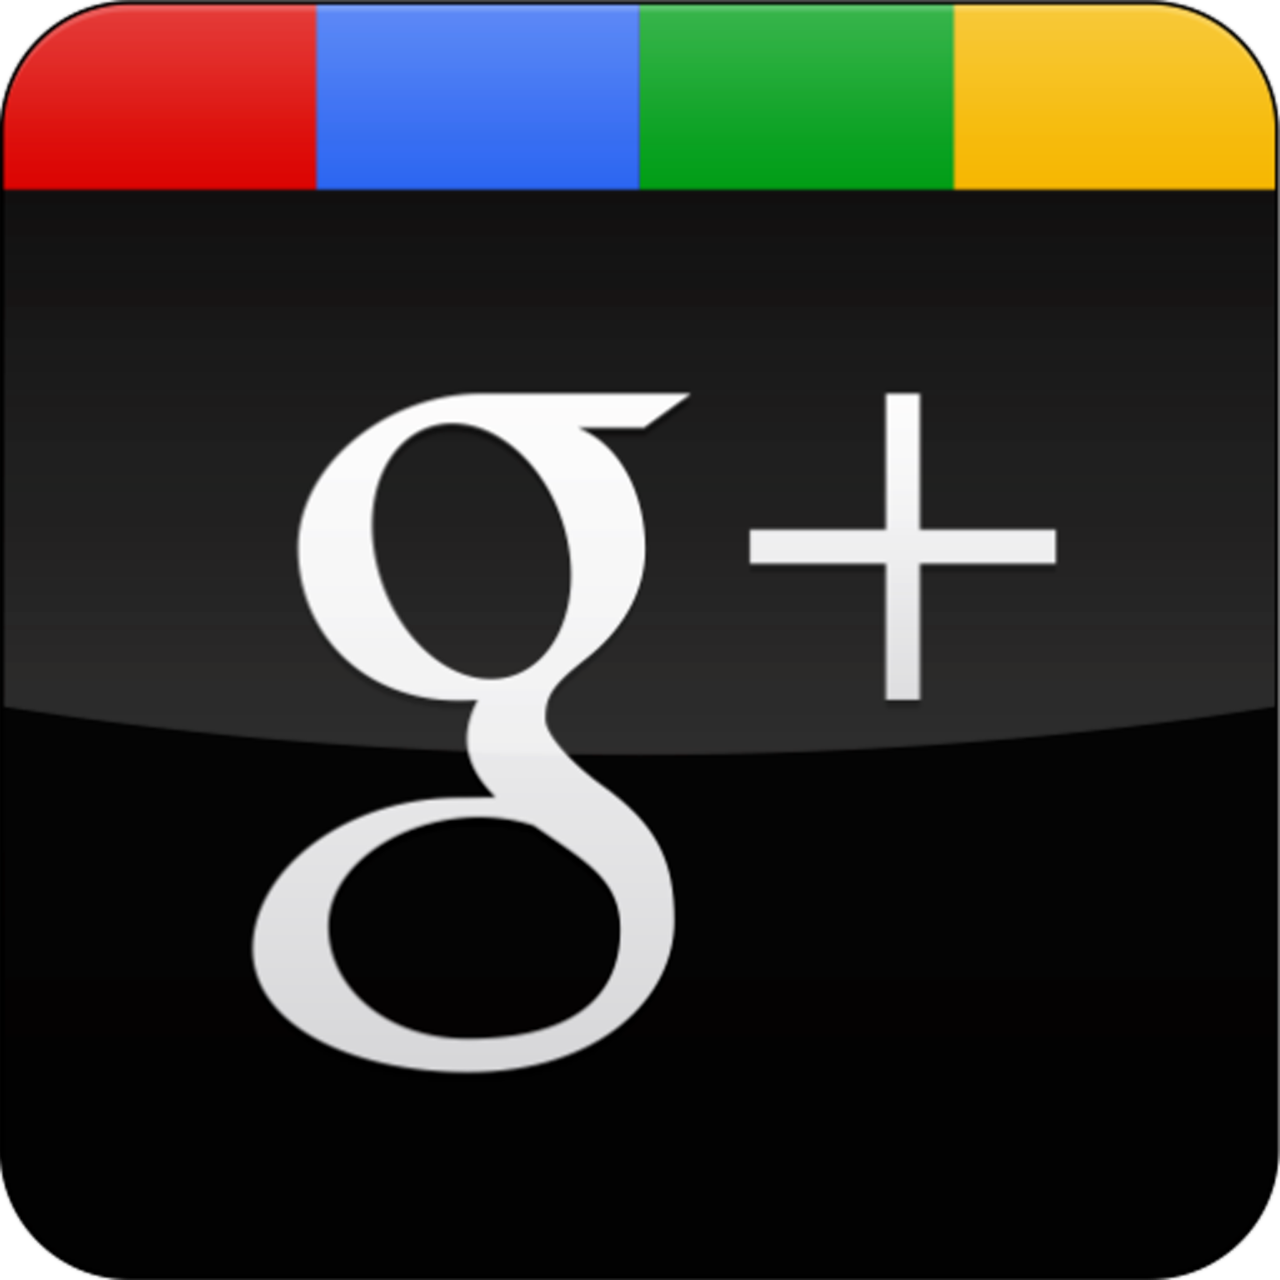 Google Plus g+ HD Logo Wallpaper| HD Wallpapers ,Backgrounds ,Photos ,Pictures, Image ,PC